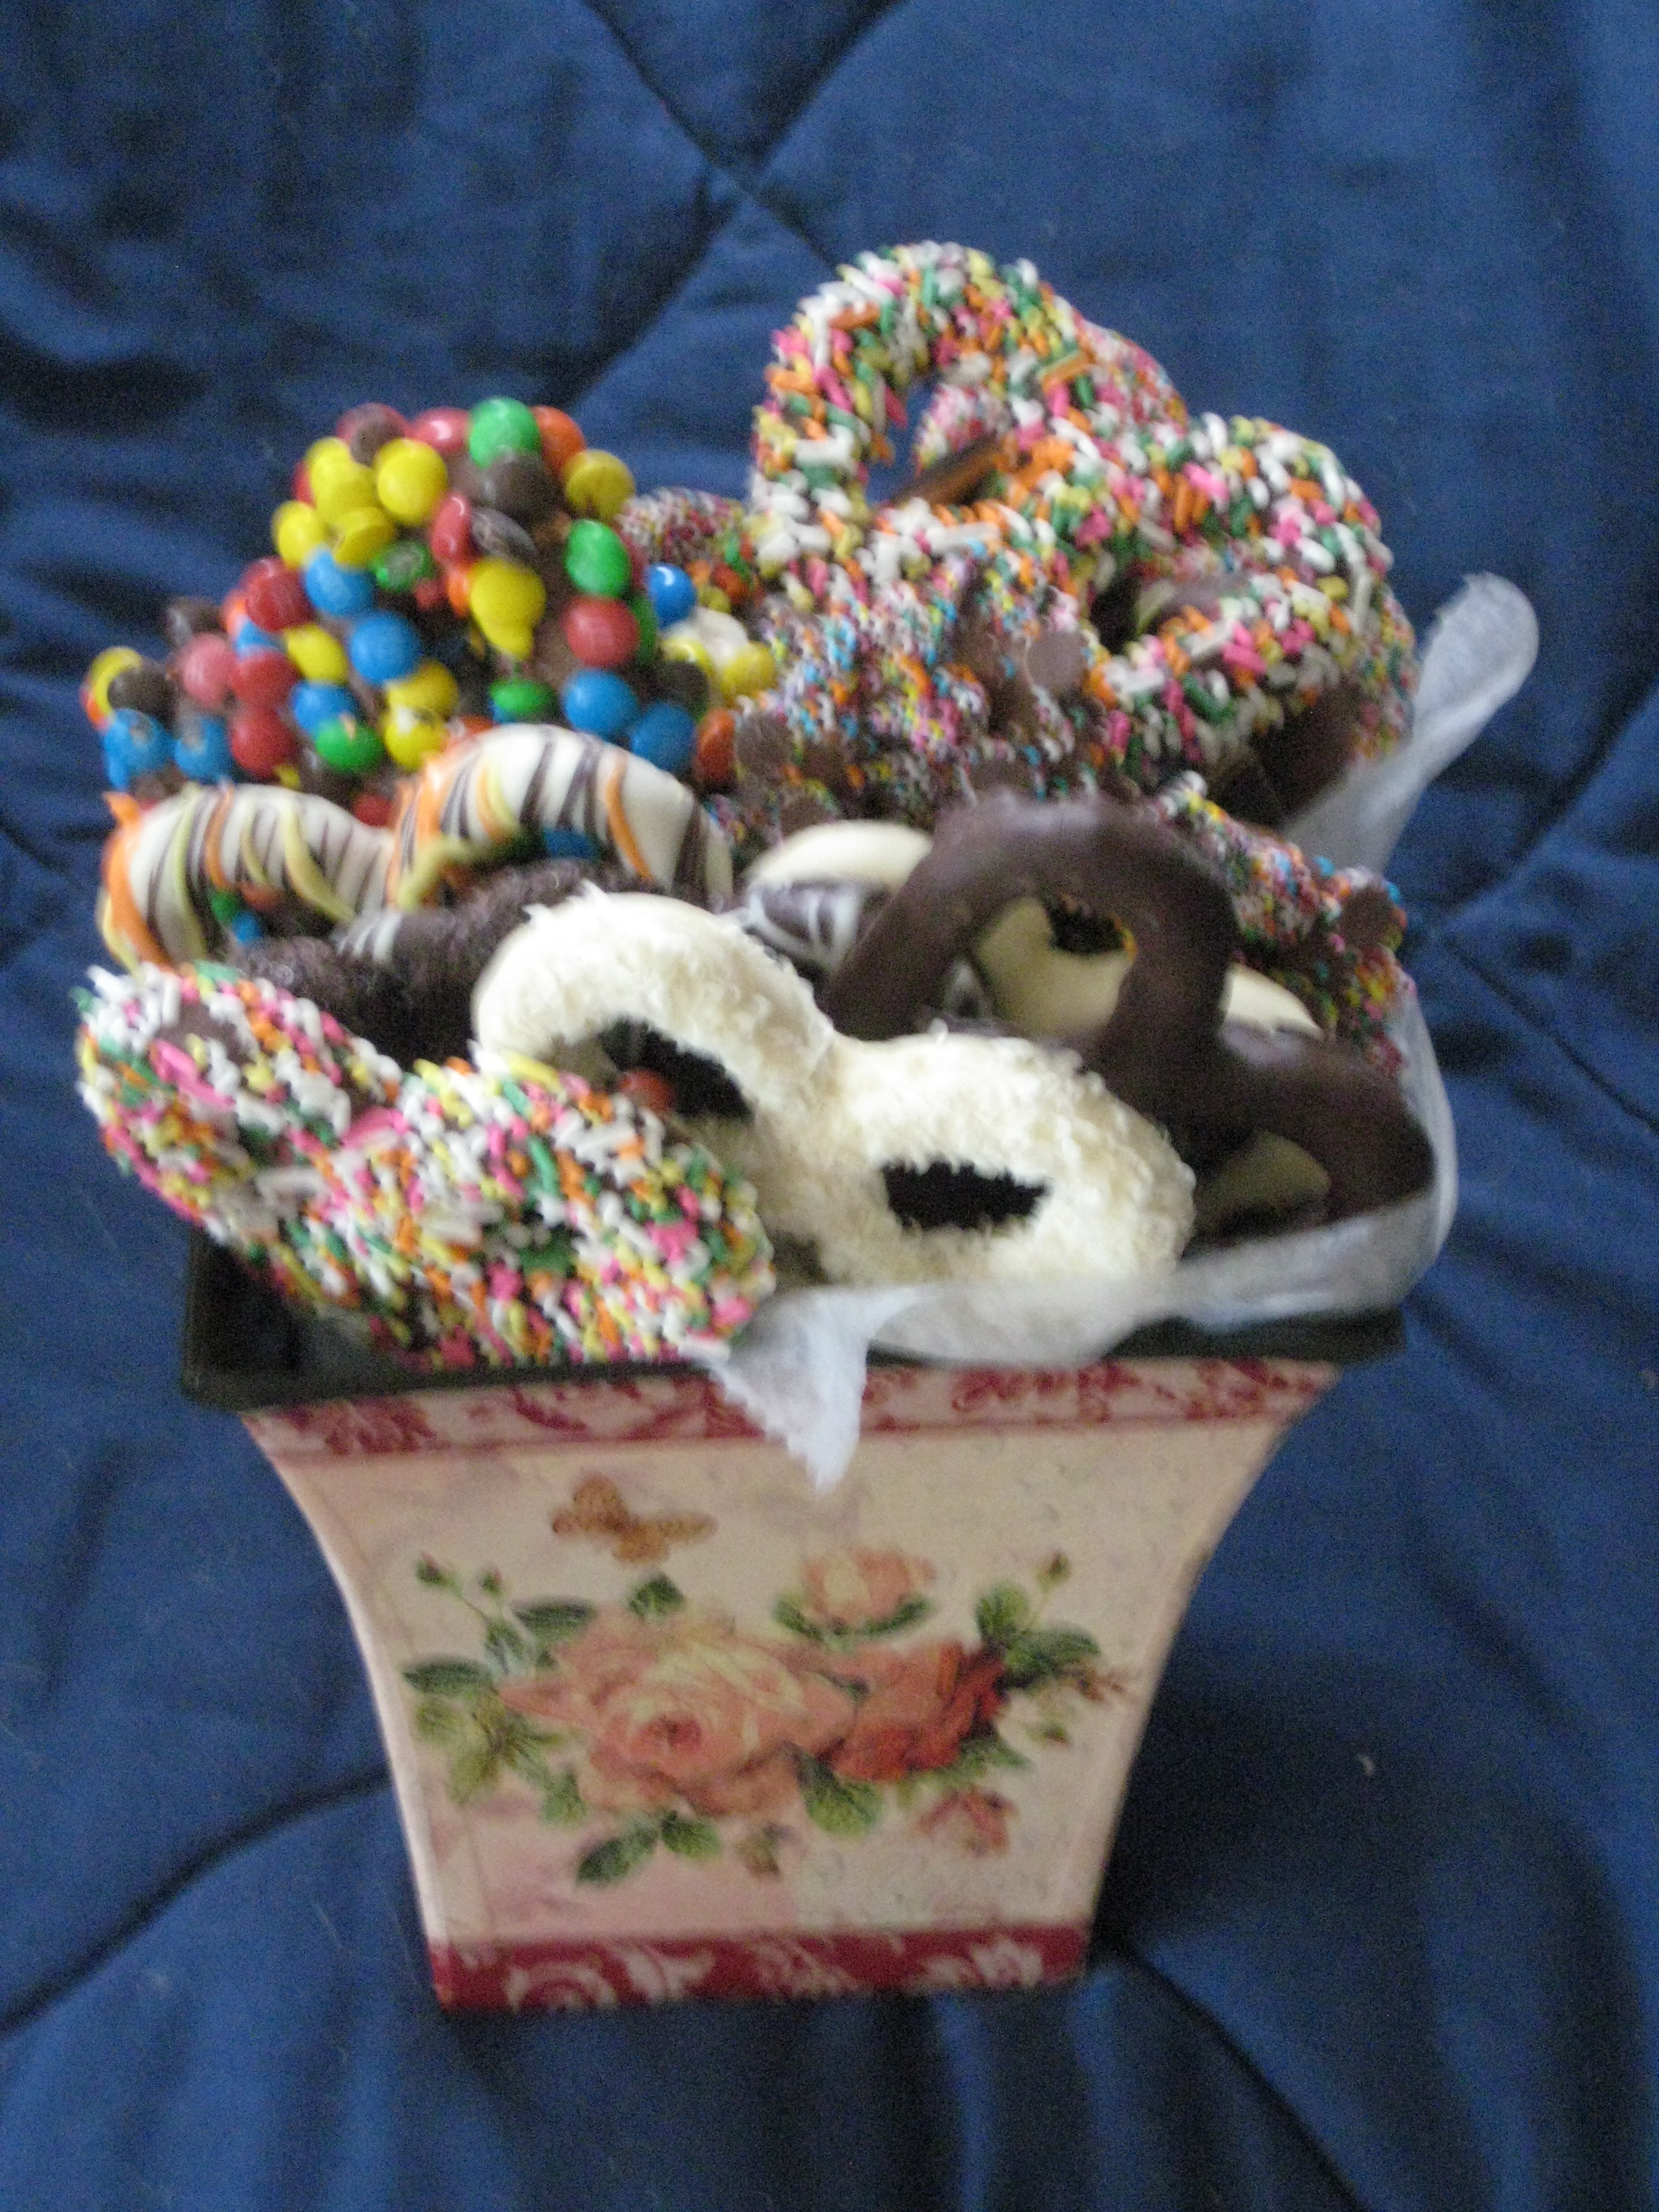 Hand-Made Gift Baskets by Sheryl